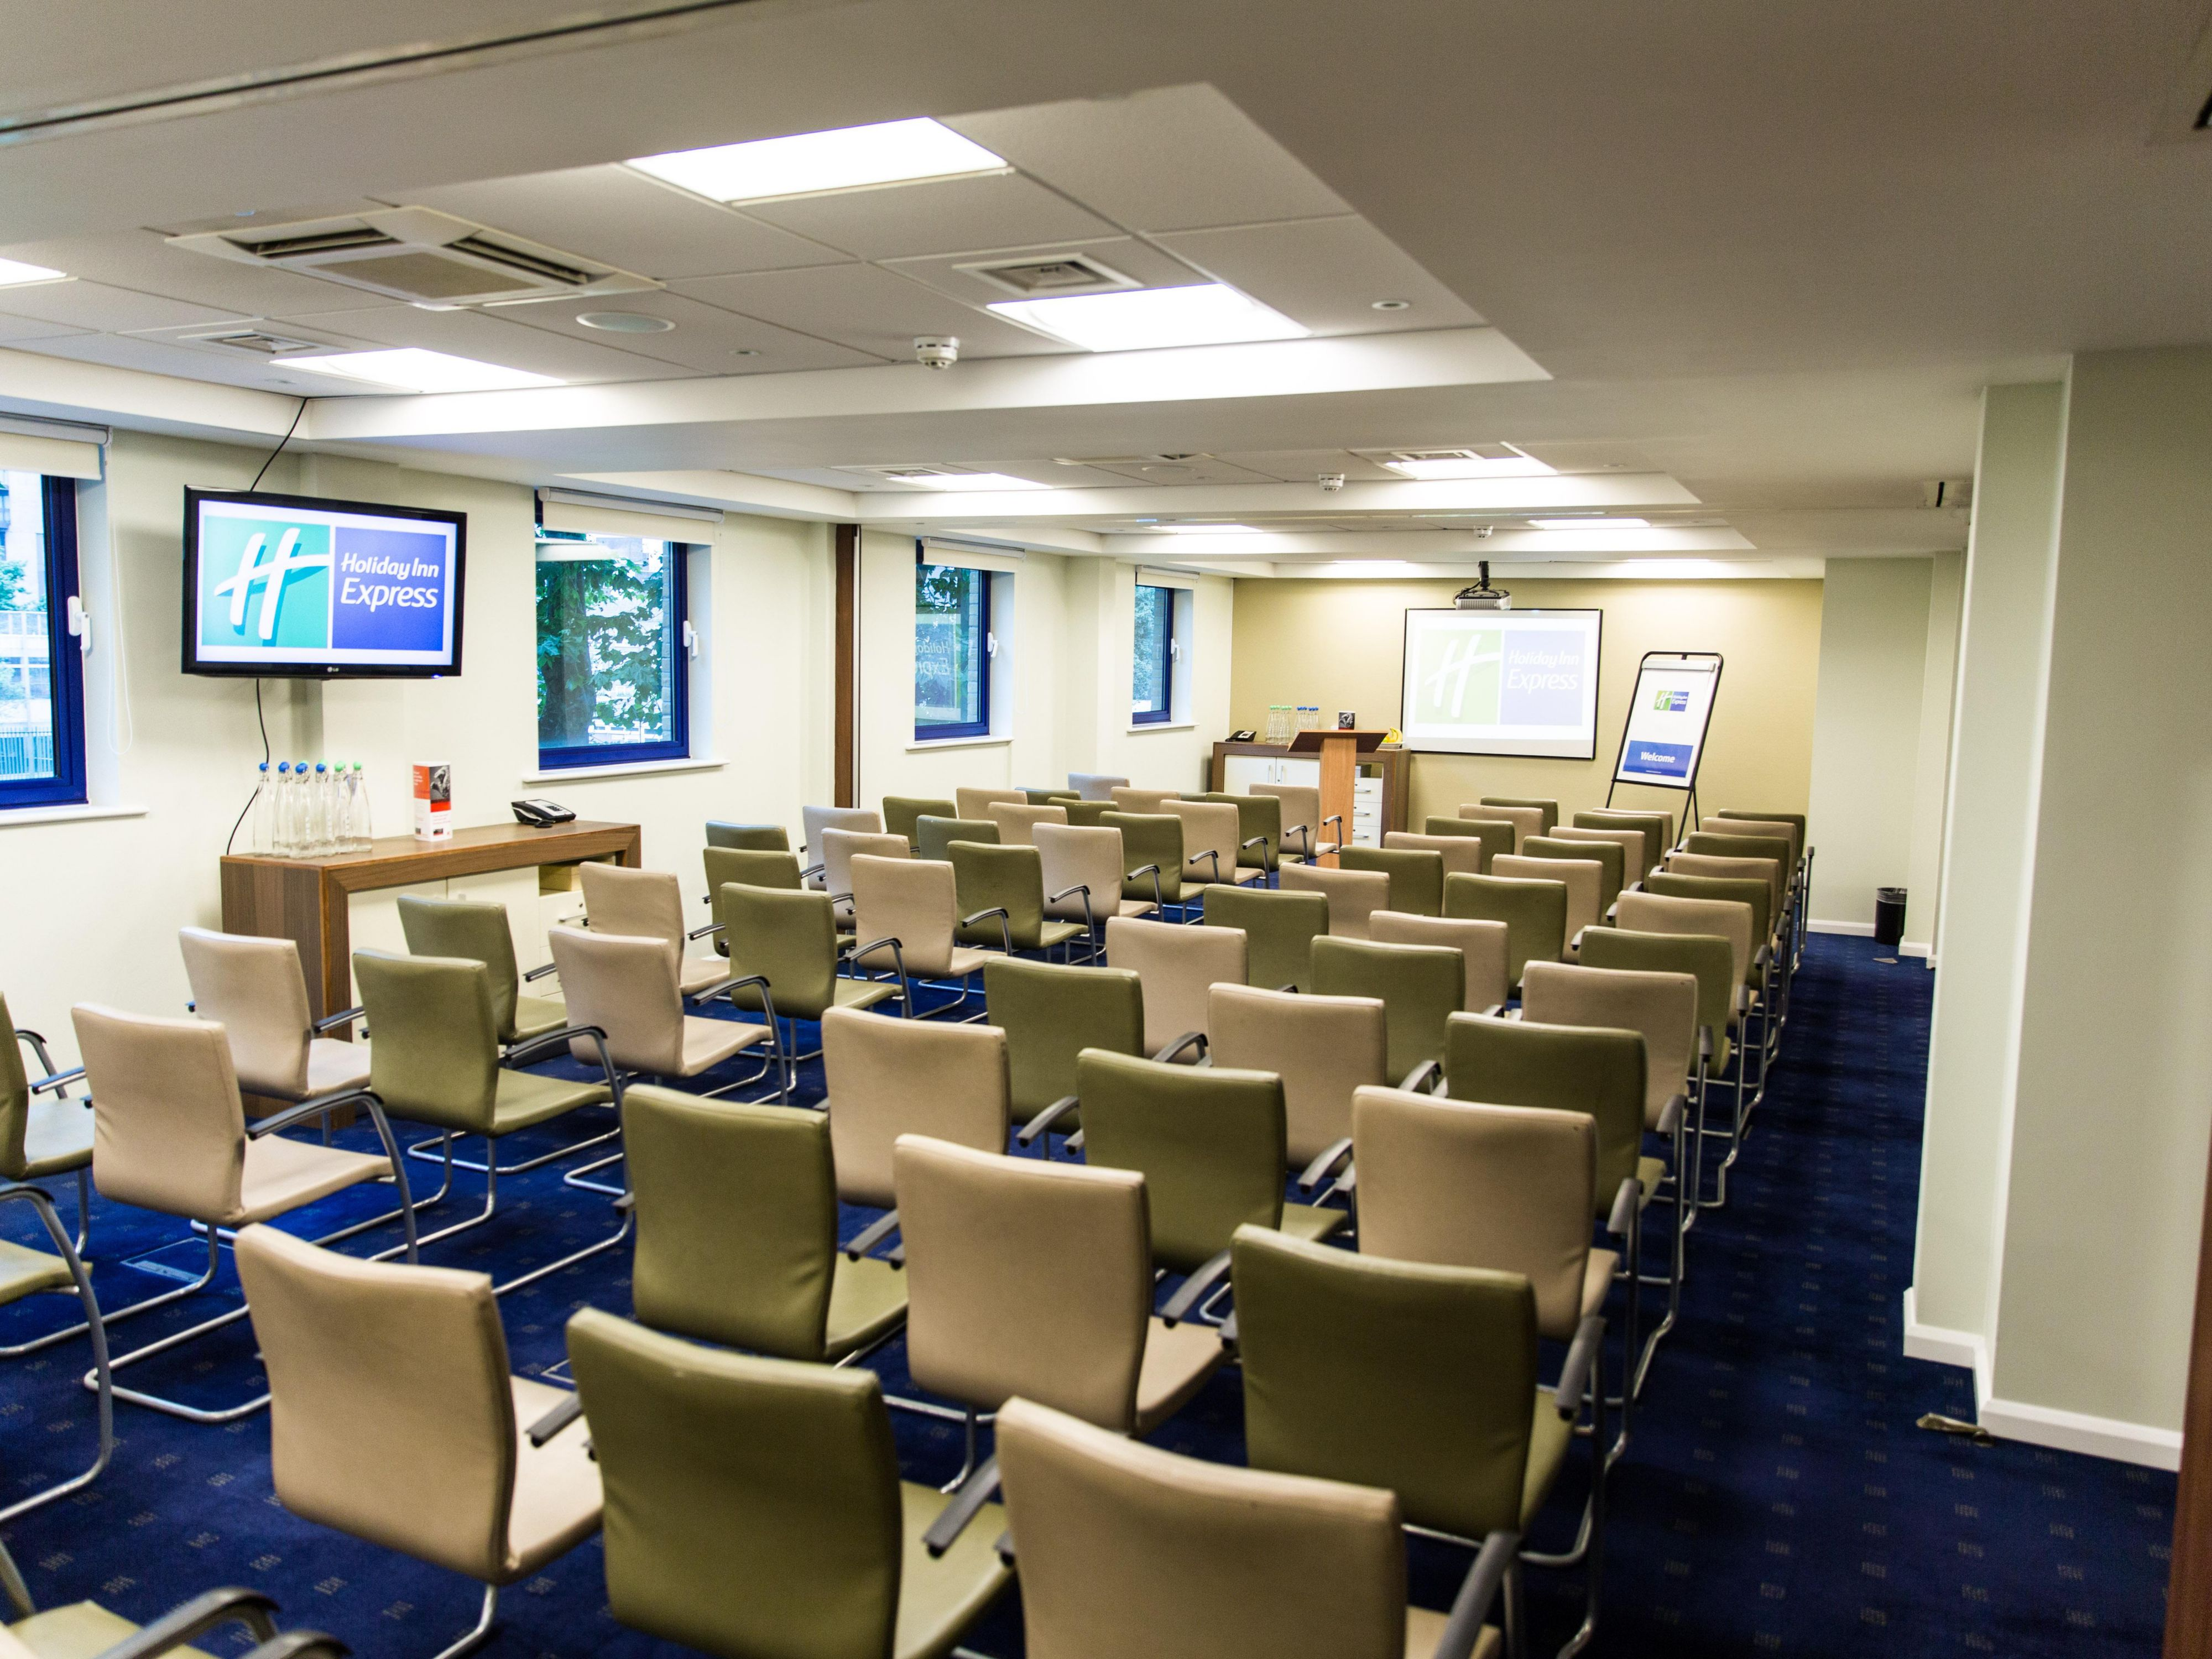 Conference room to accommodate up to 80 delegates theatre style